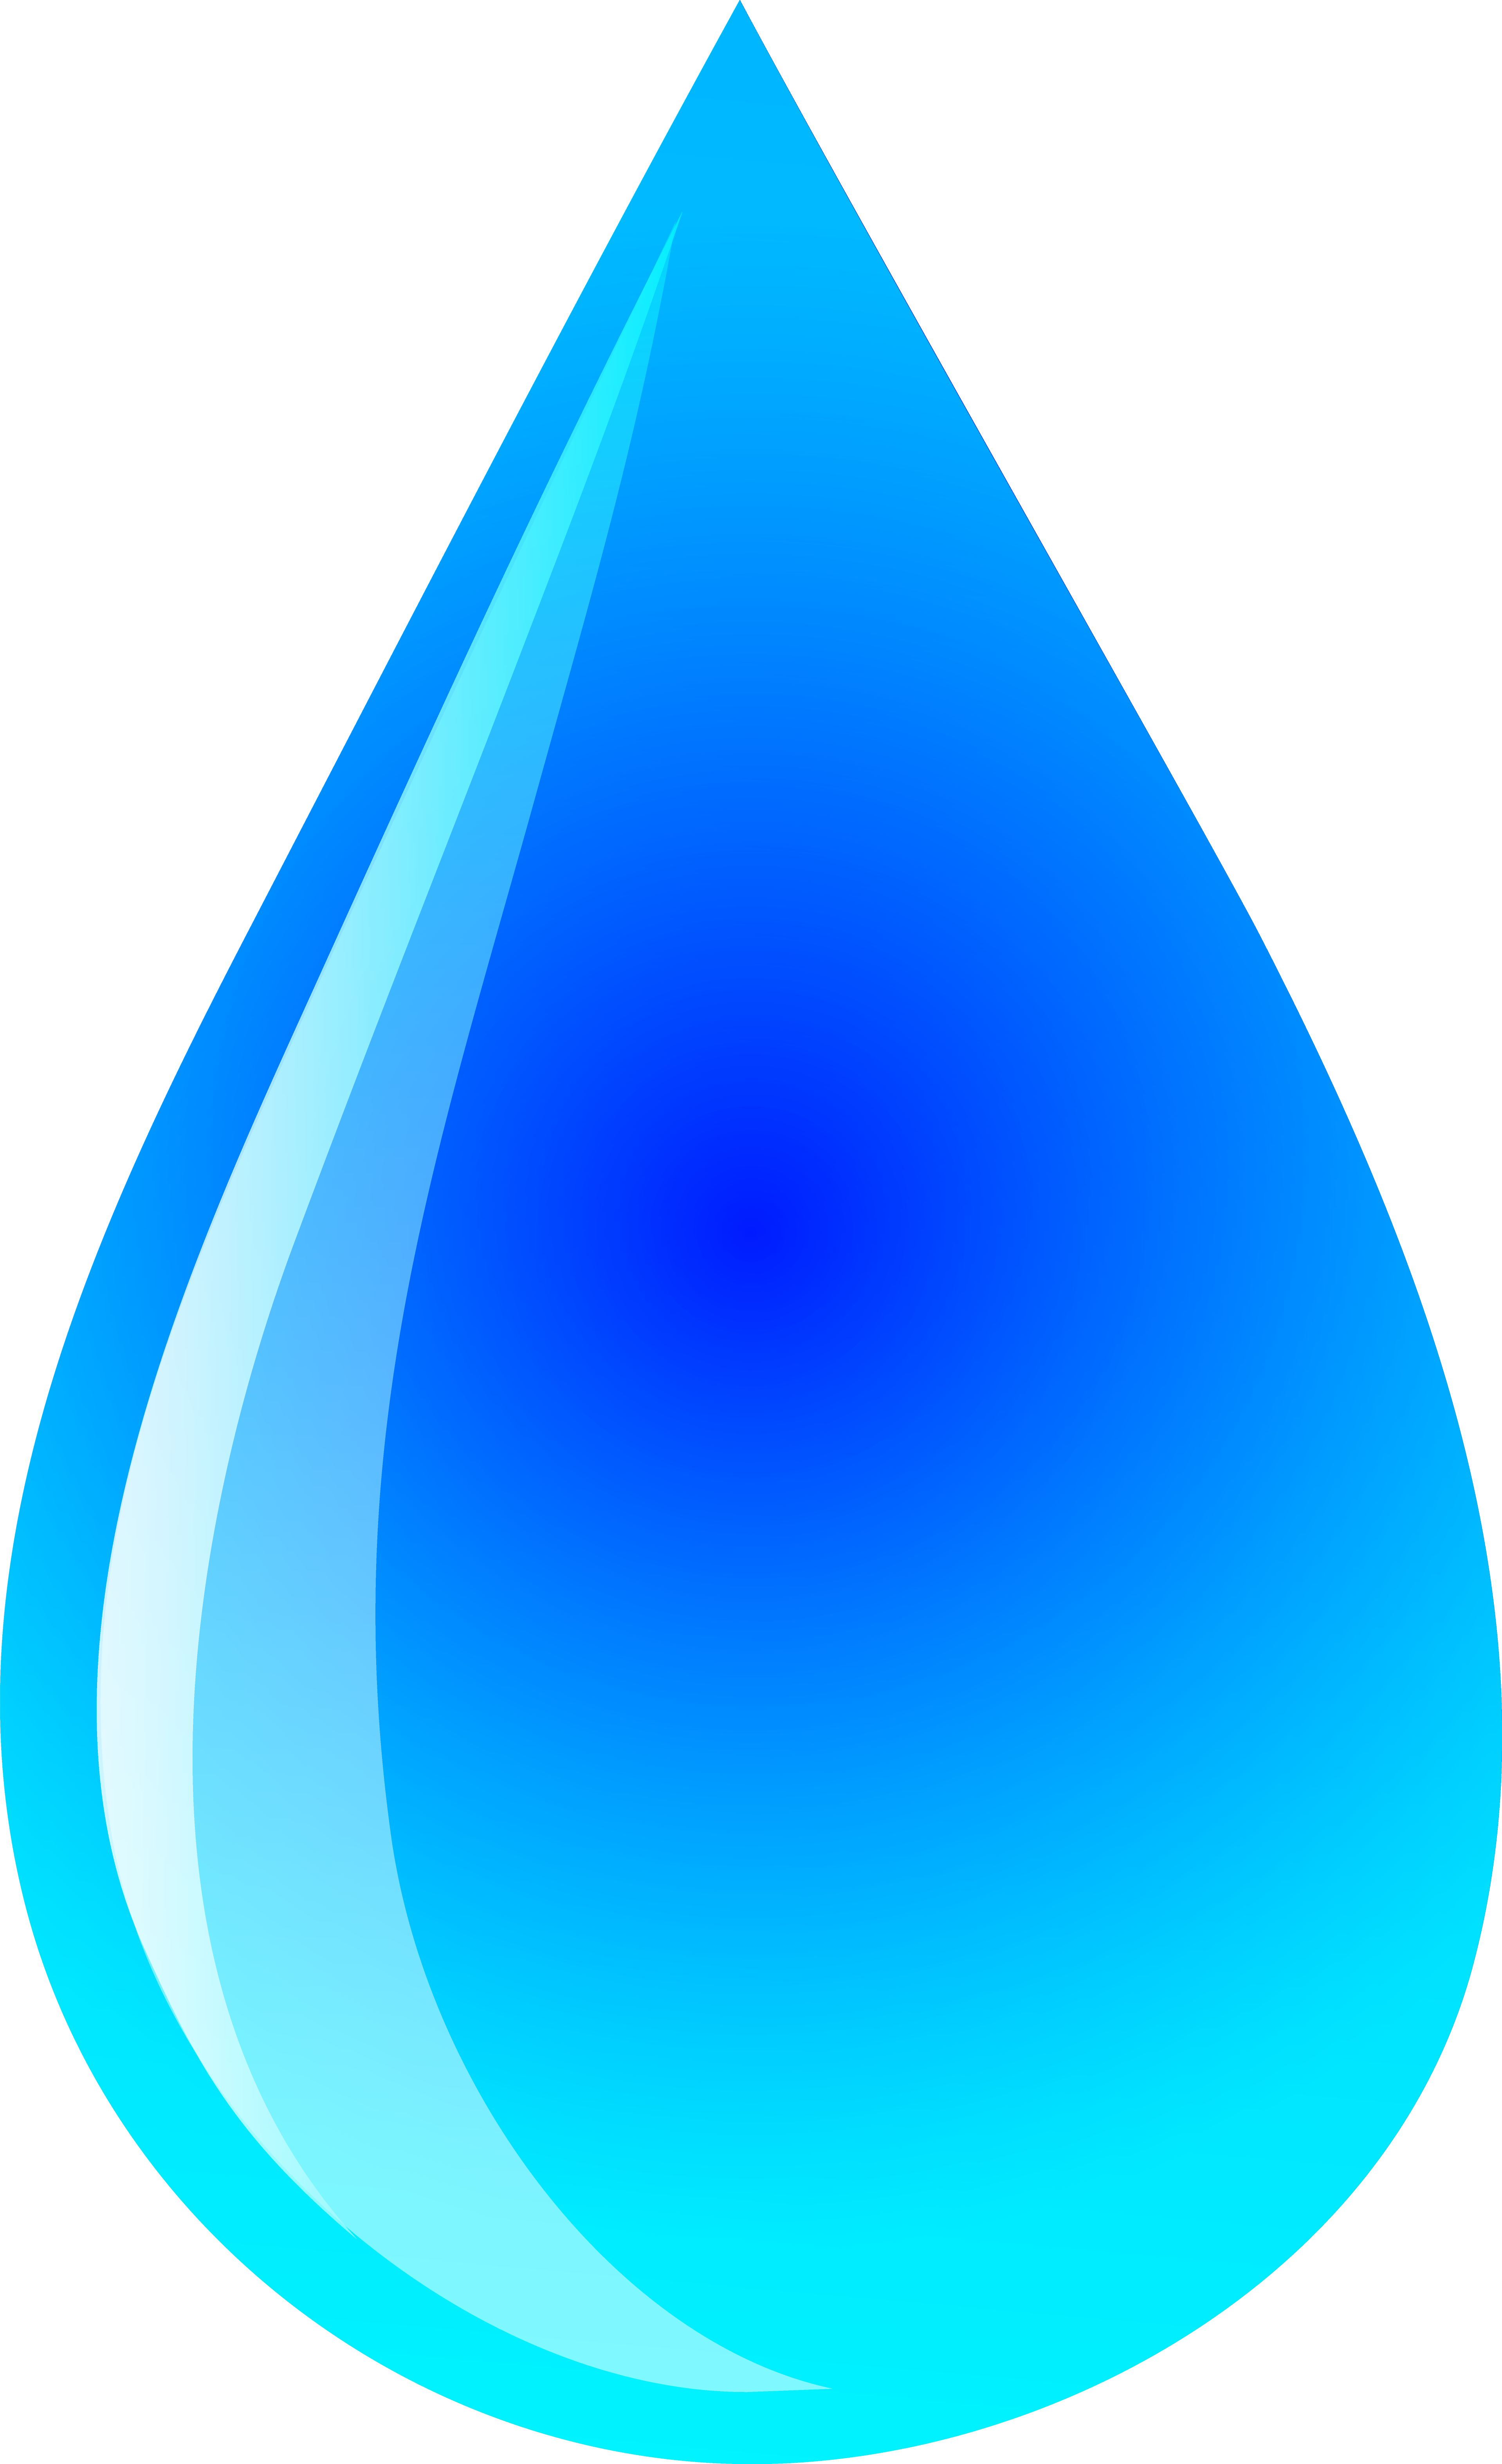 Blue water droplet logo. Drops clipart banner library download